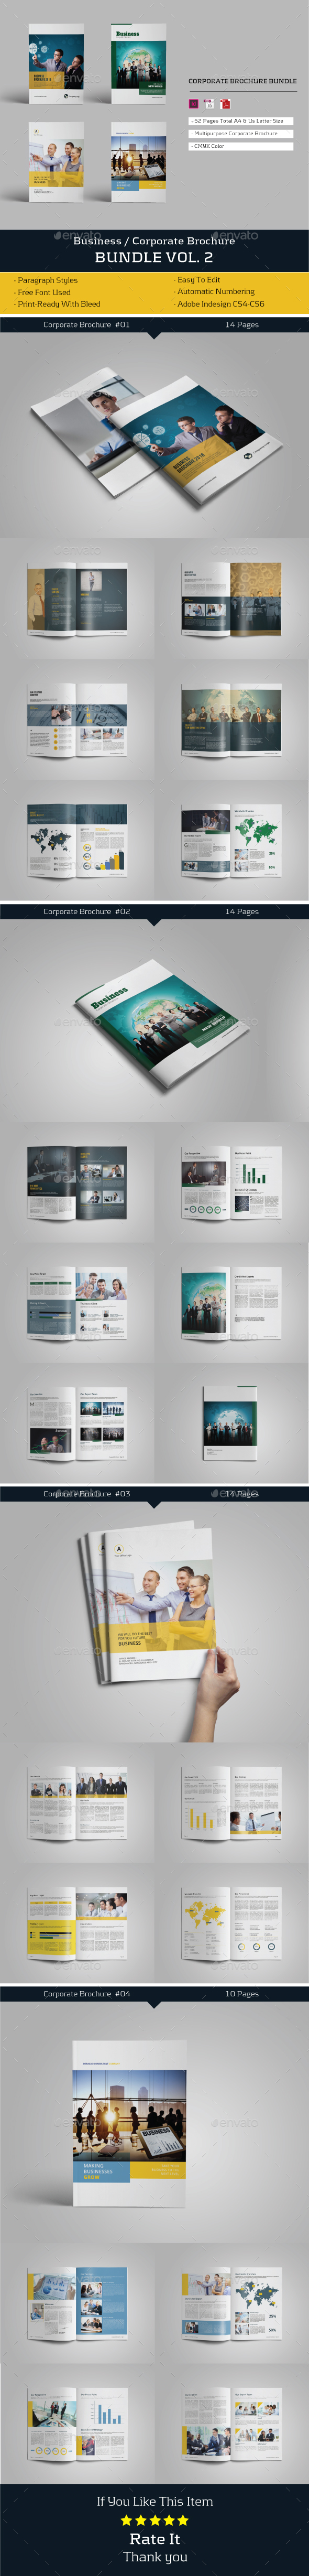 Businees Brochure Bundle Vol. 2 - Corporate Brochures